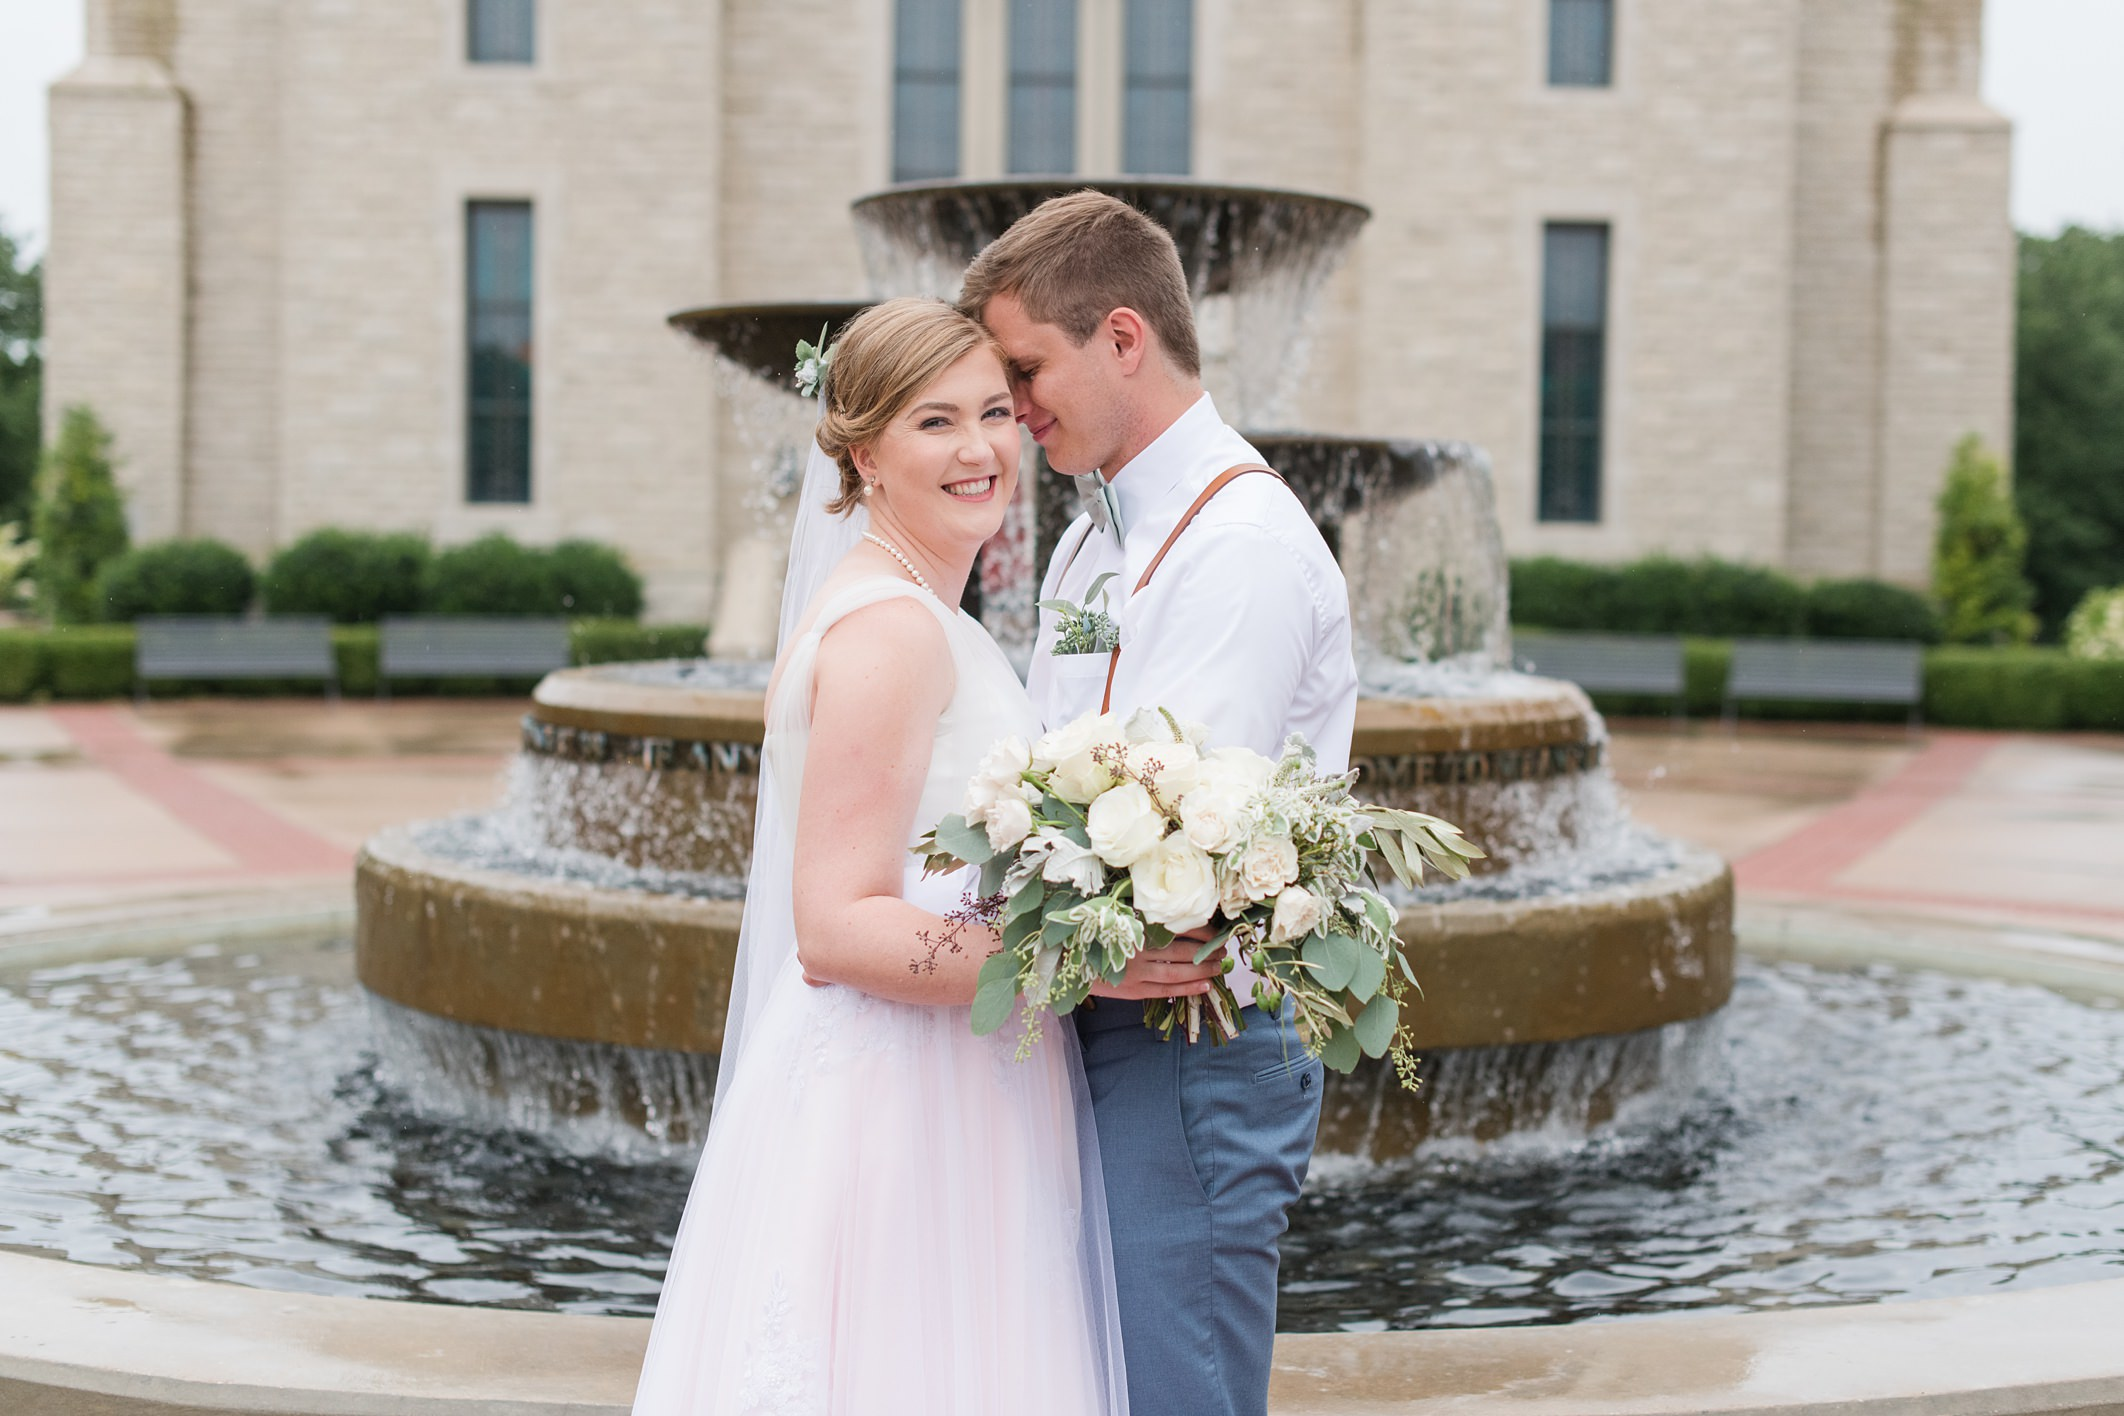 Josh + Mallory Wedding in Siloam Springs, AR